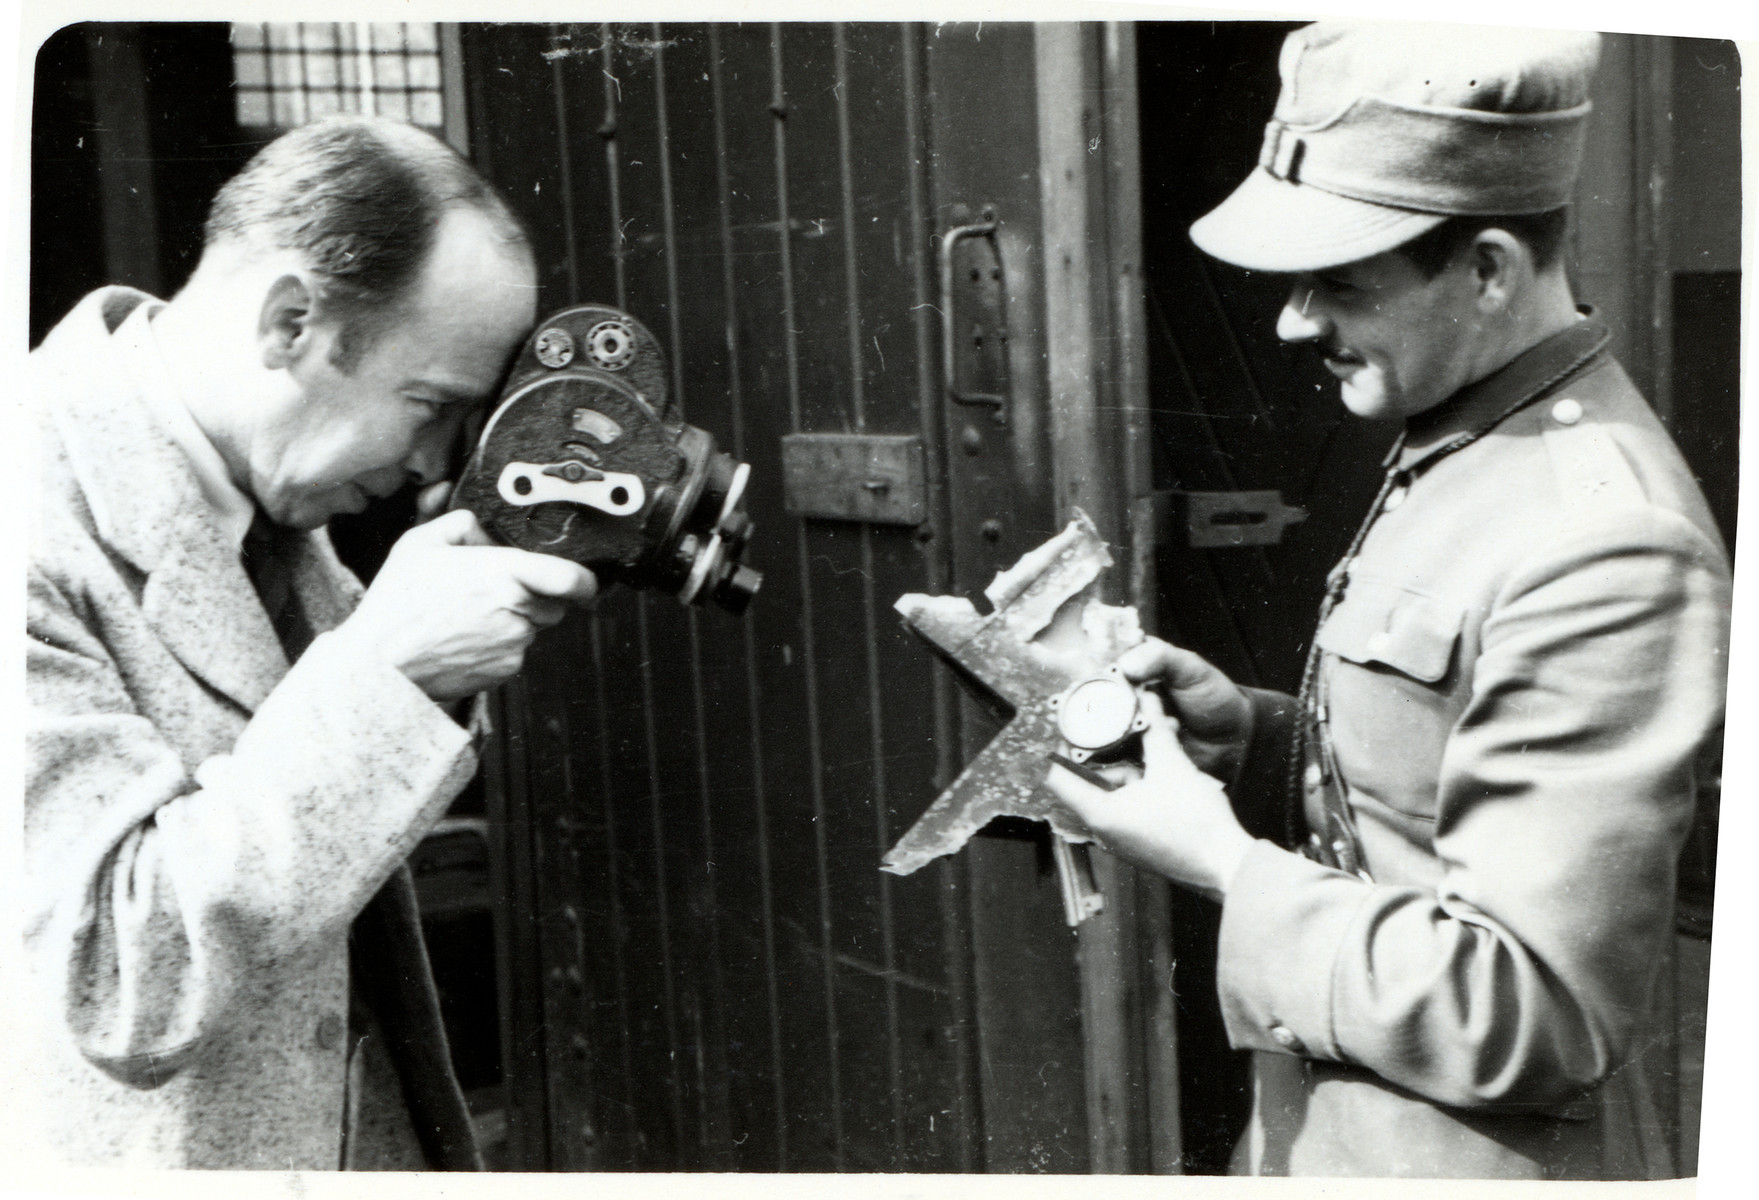 Julien Bryan films objects [possibly the wreckage from a German plane] in a Polish soldier's hand in besieged Warsaw.